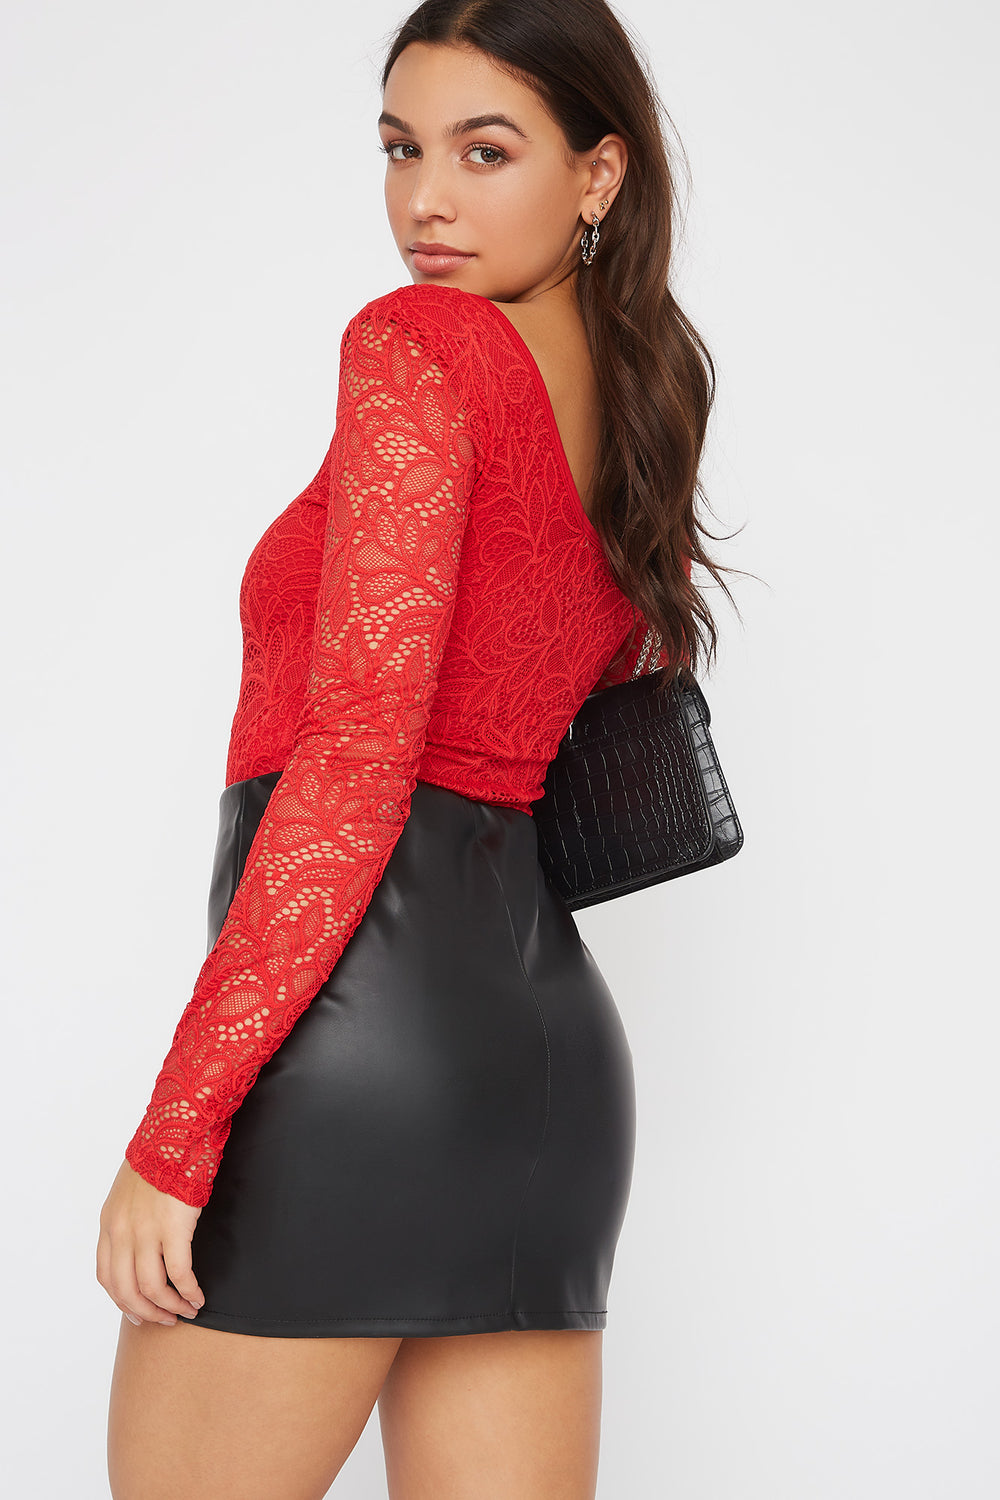 Floral Lace Long Sleeve Bodysuit Bright Red